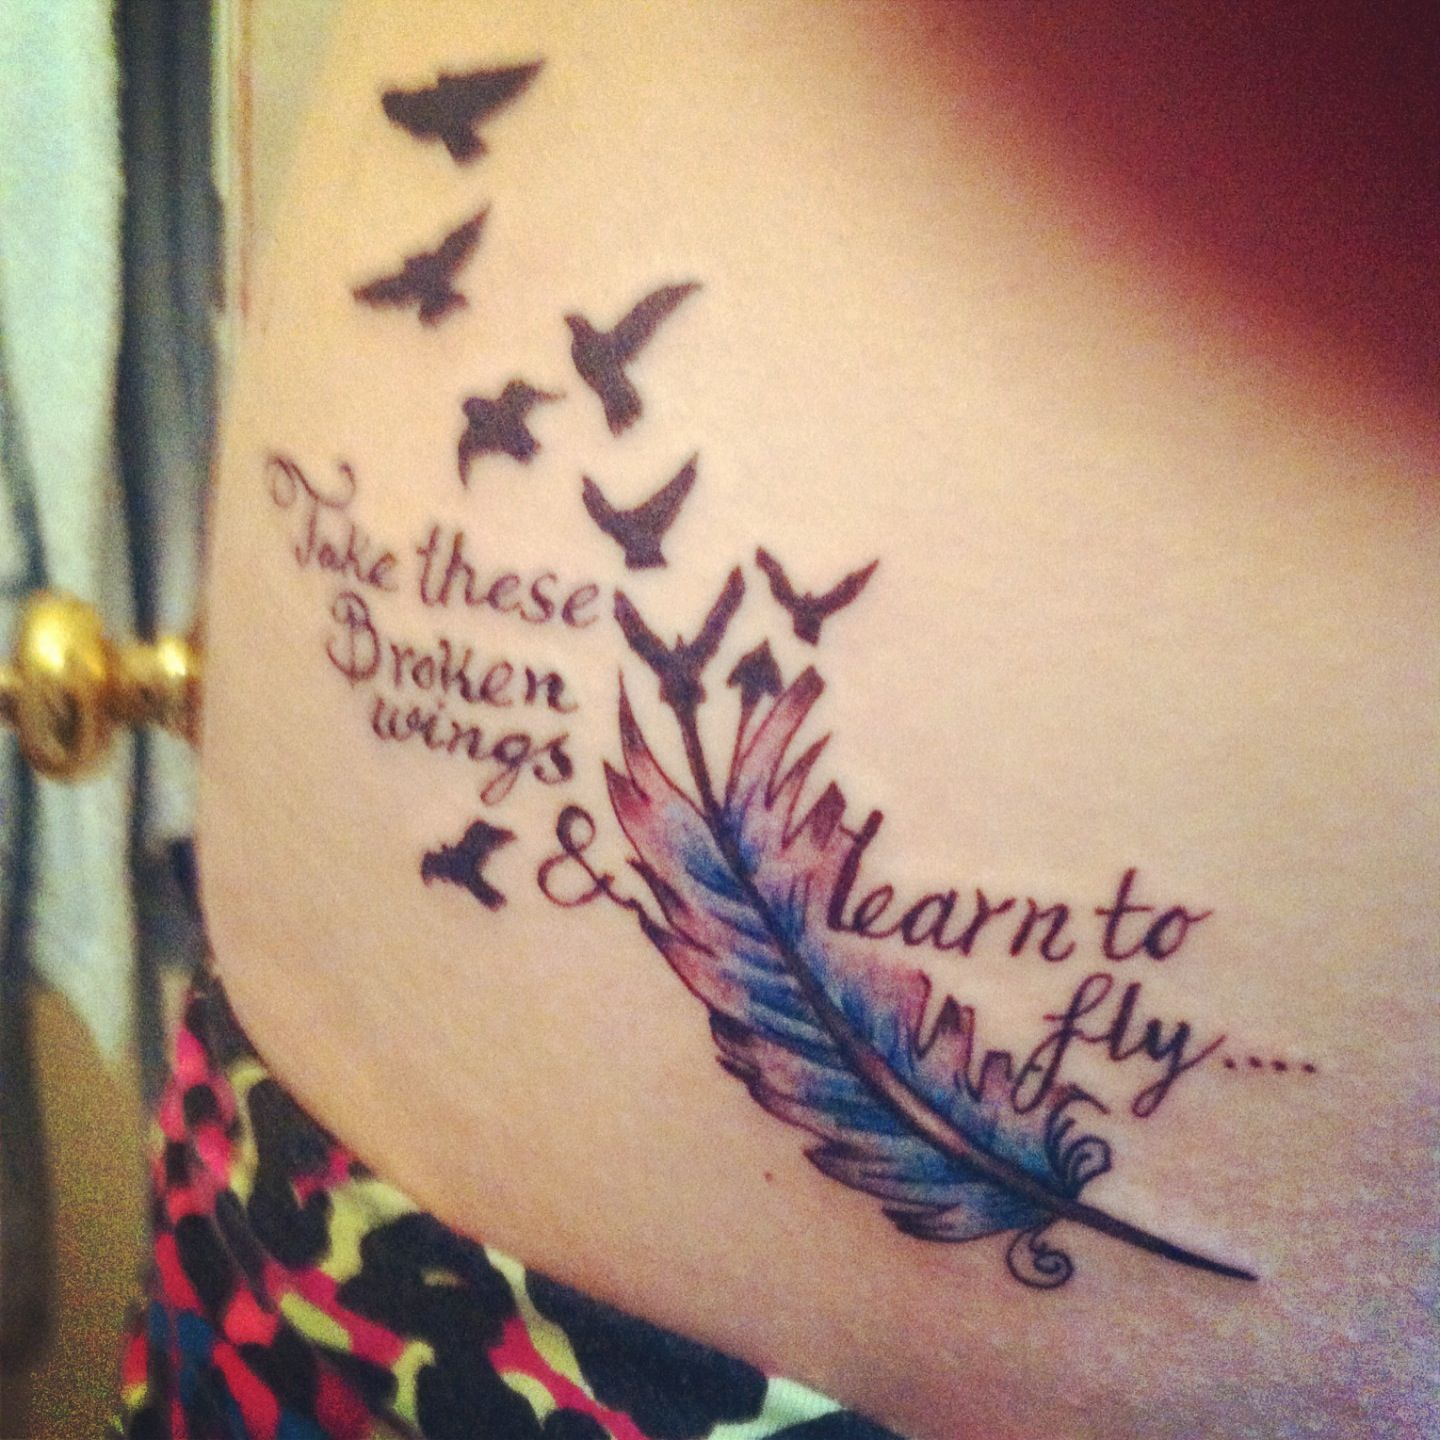 Take these broken wing learn to fly tattoos for Learn to do tattoos